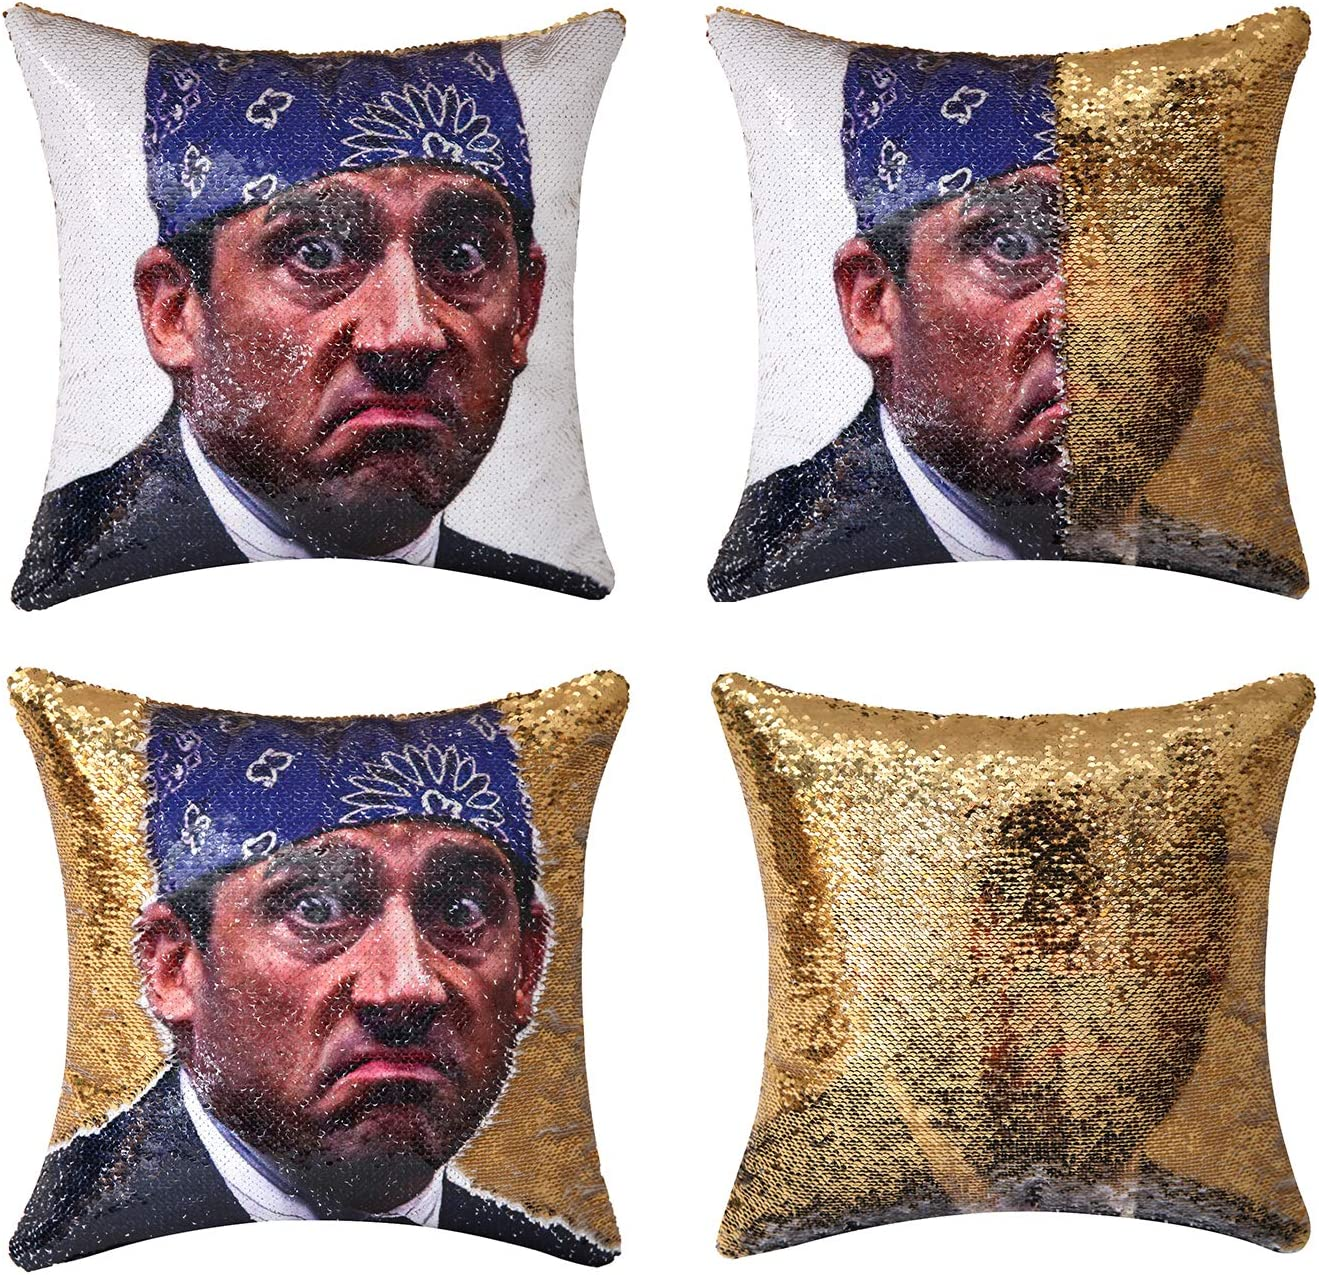 cygnus The Office Michael Scott Quote Humor Sequin Reversible Pillowcover Mermaid Flip Pillow Case That Color Change Decor Cushion 16x16 inches (Gold Sequin)